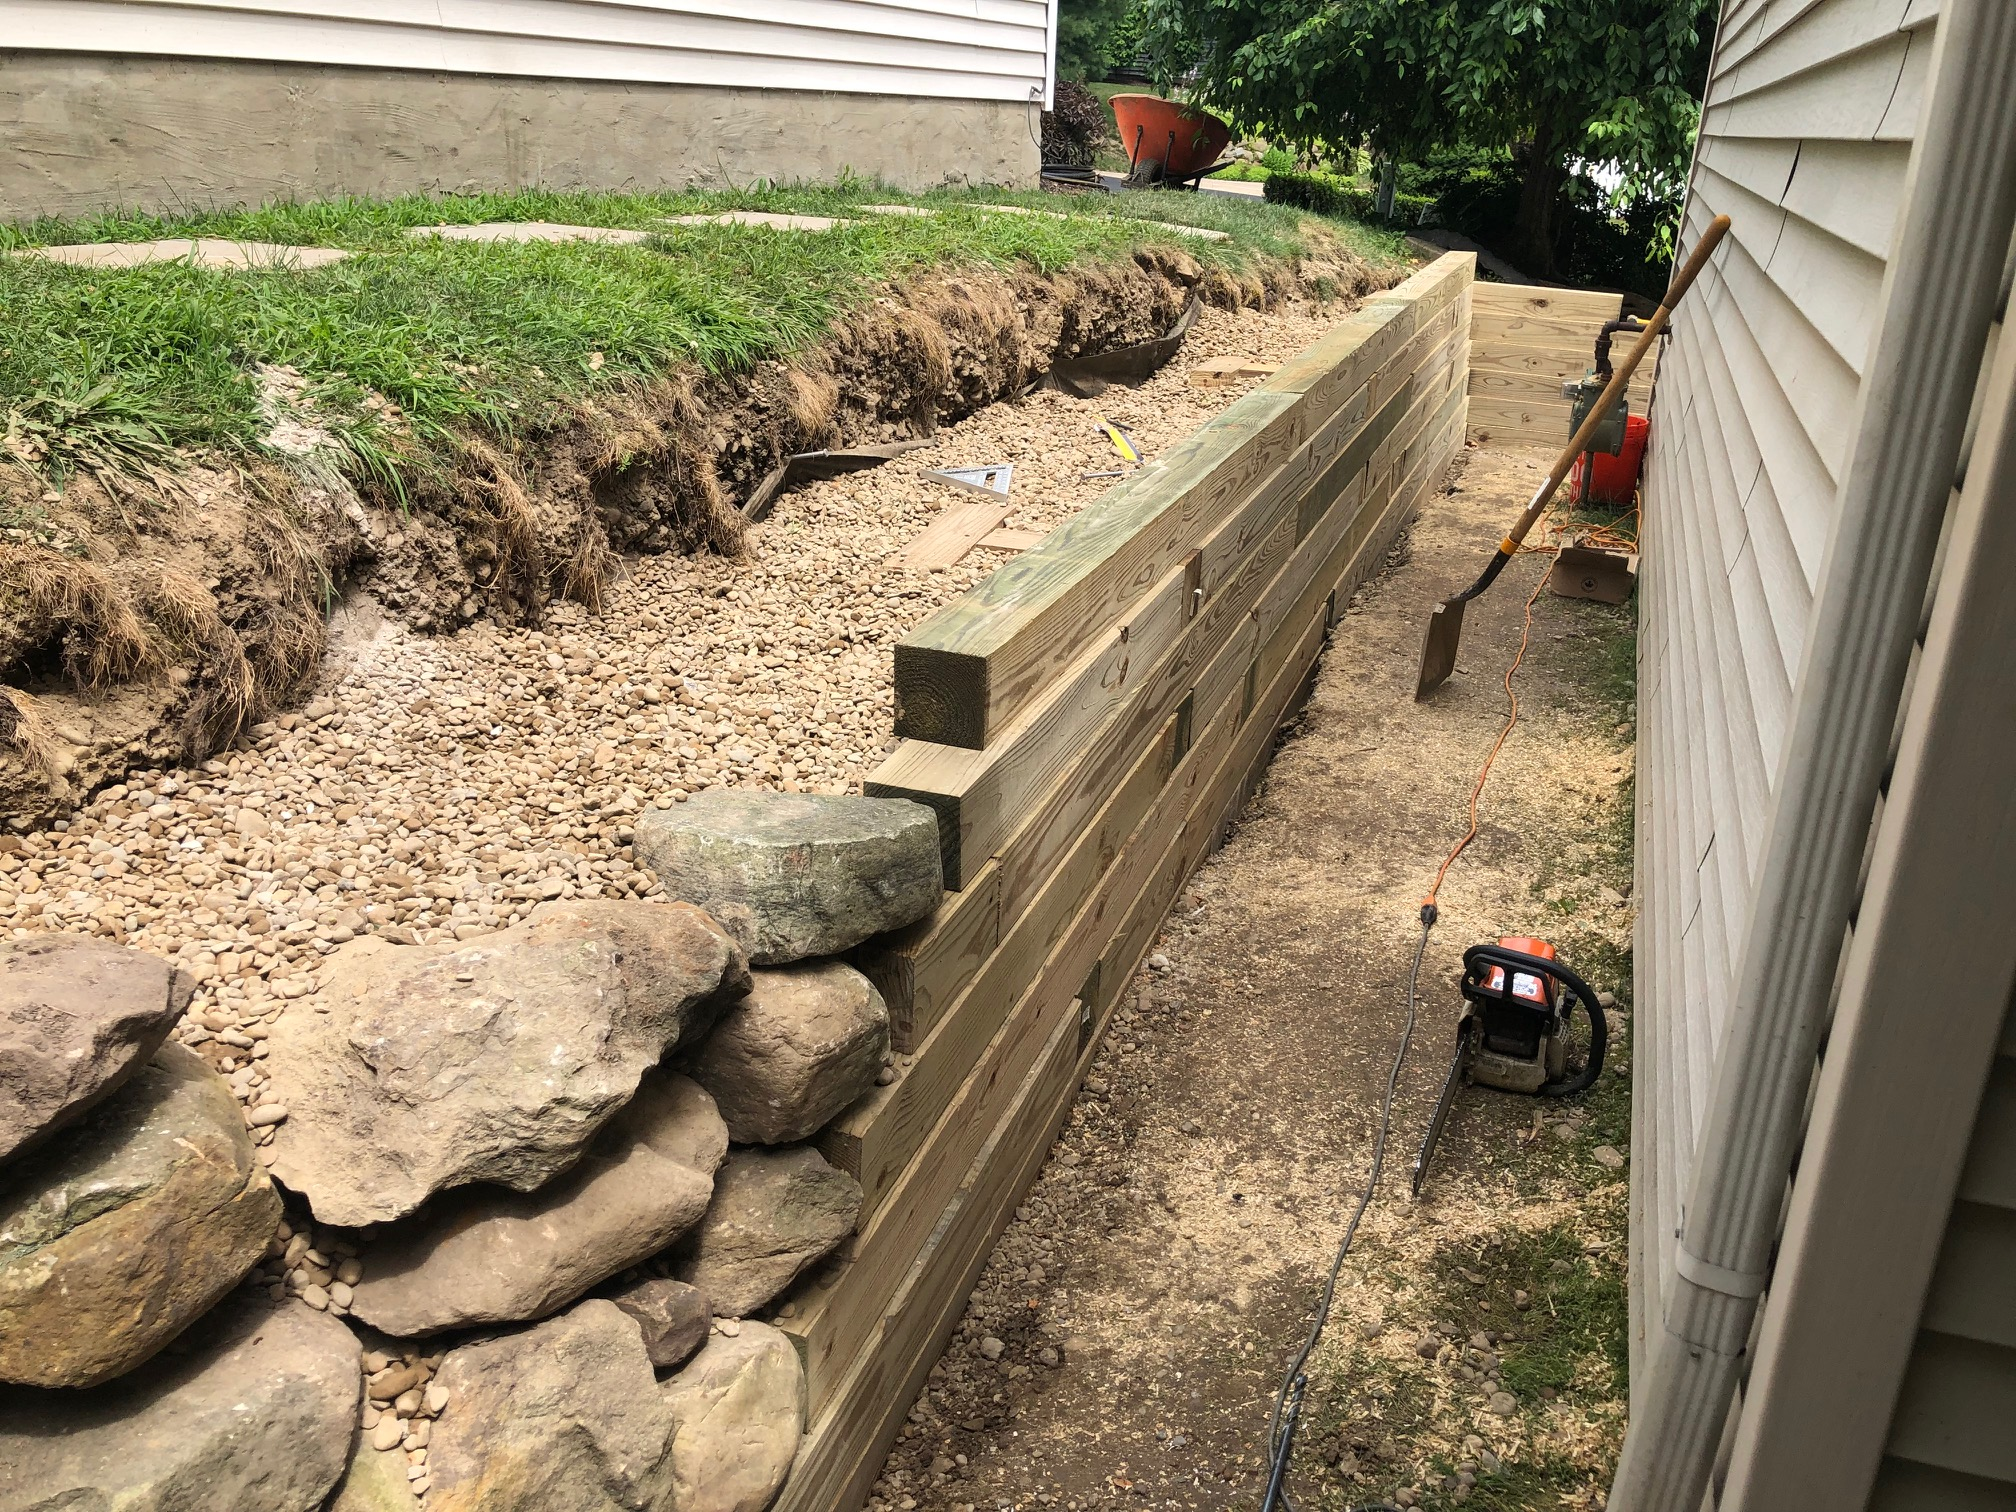 Erosion Control Solutions in Northeast Ohio (Effectiveness, Hiring a Company & Other Considerations)